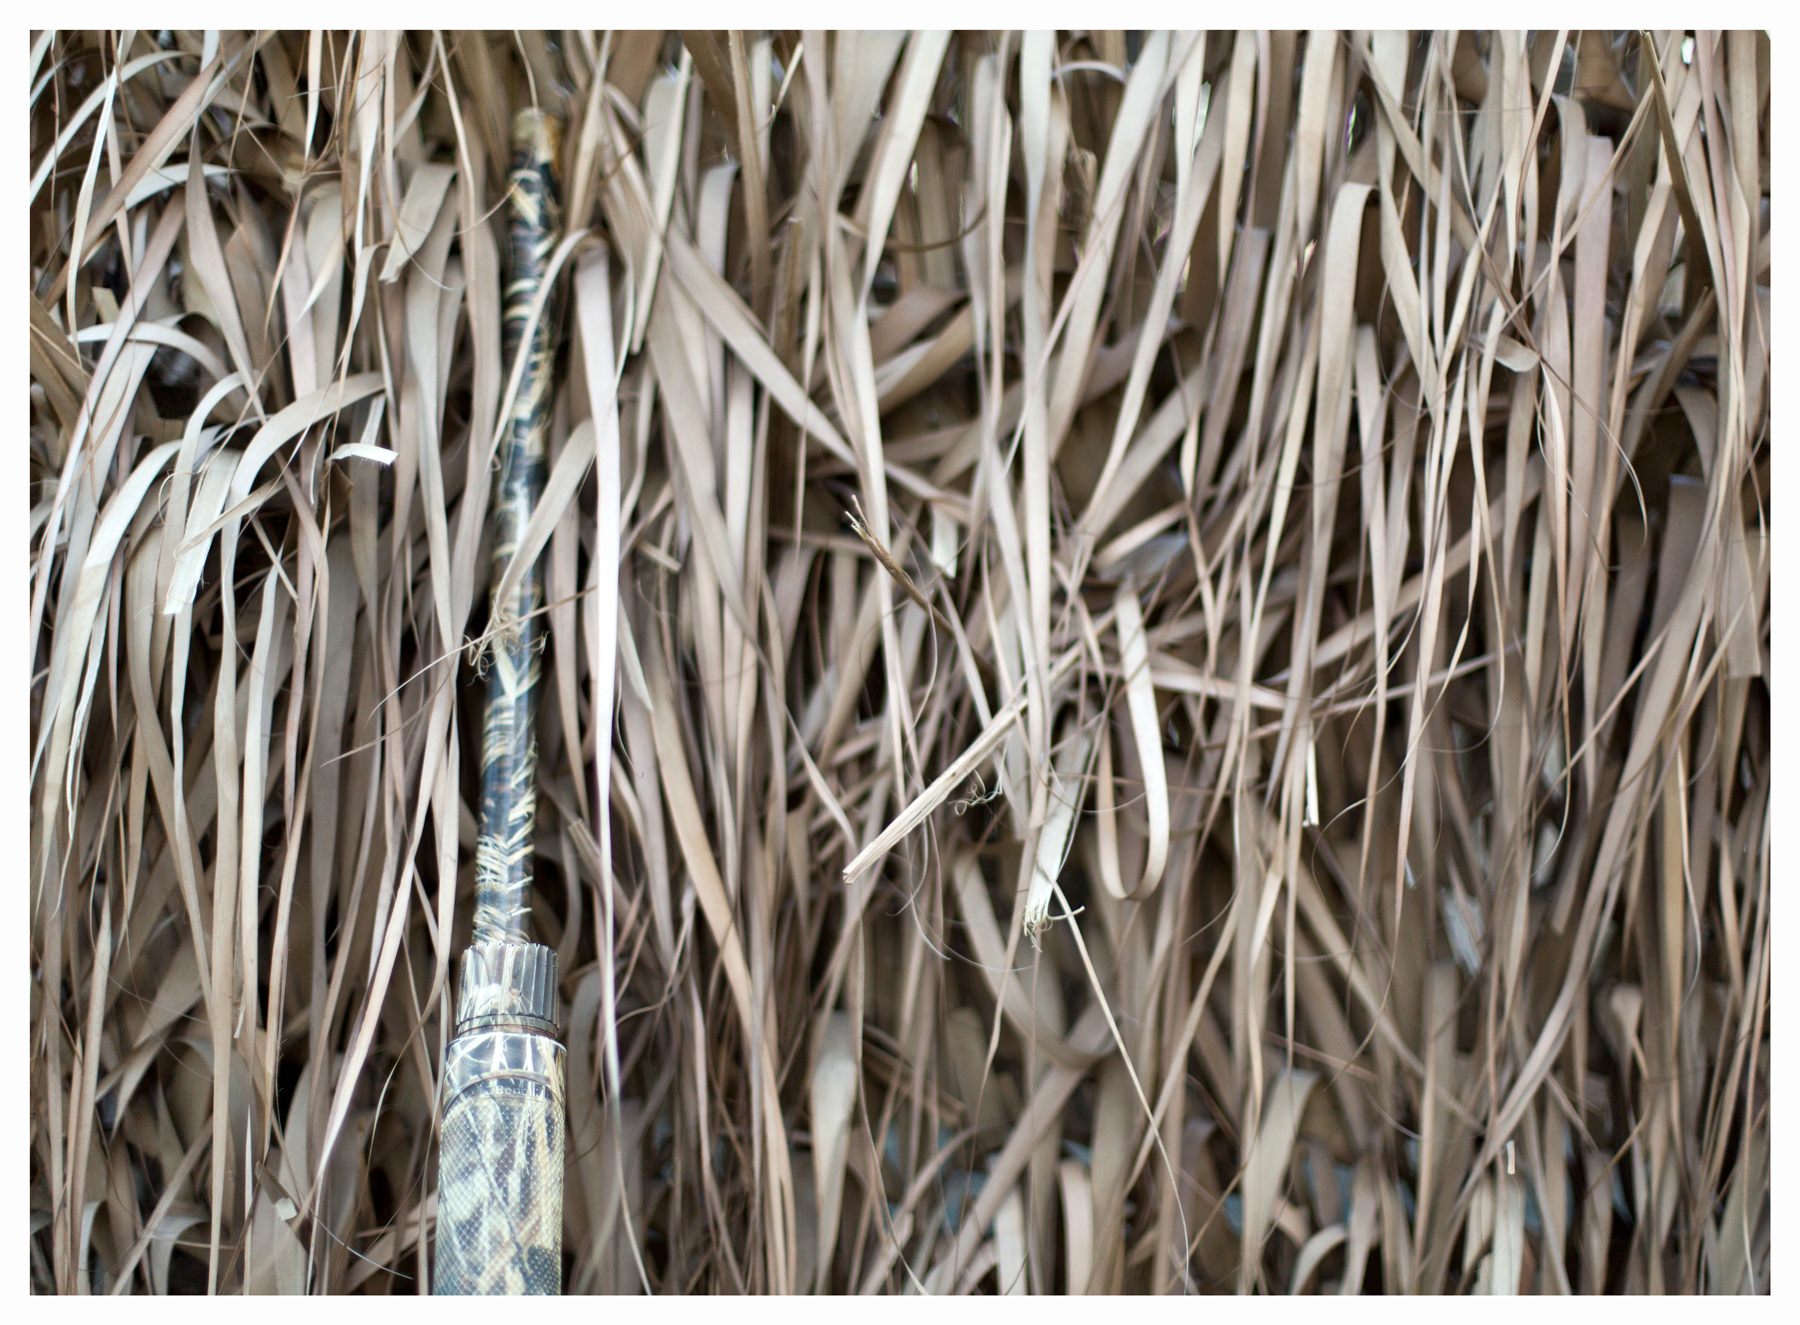 Shotgun leaning against duck blind; Eastern Shore of Viriginia; November 2013